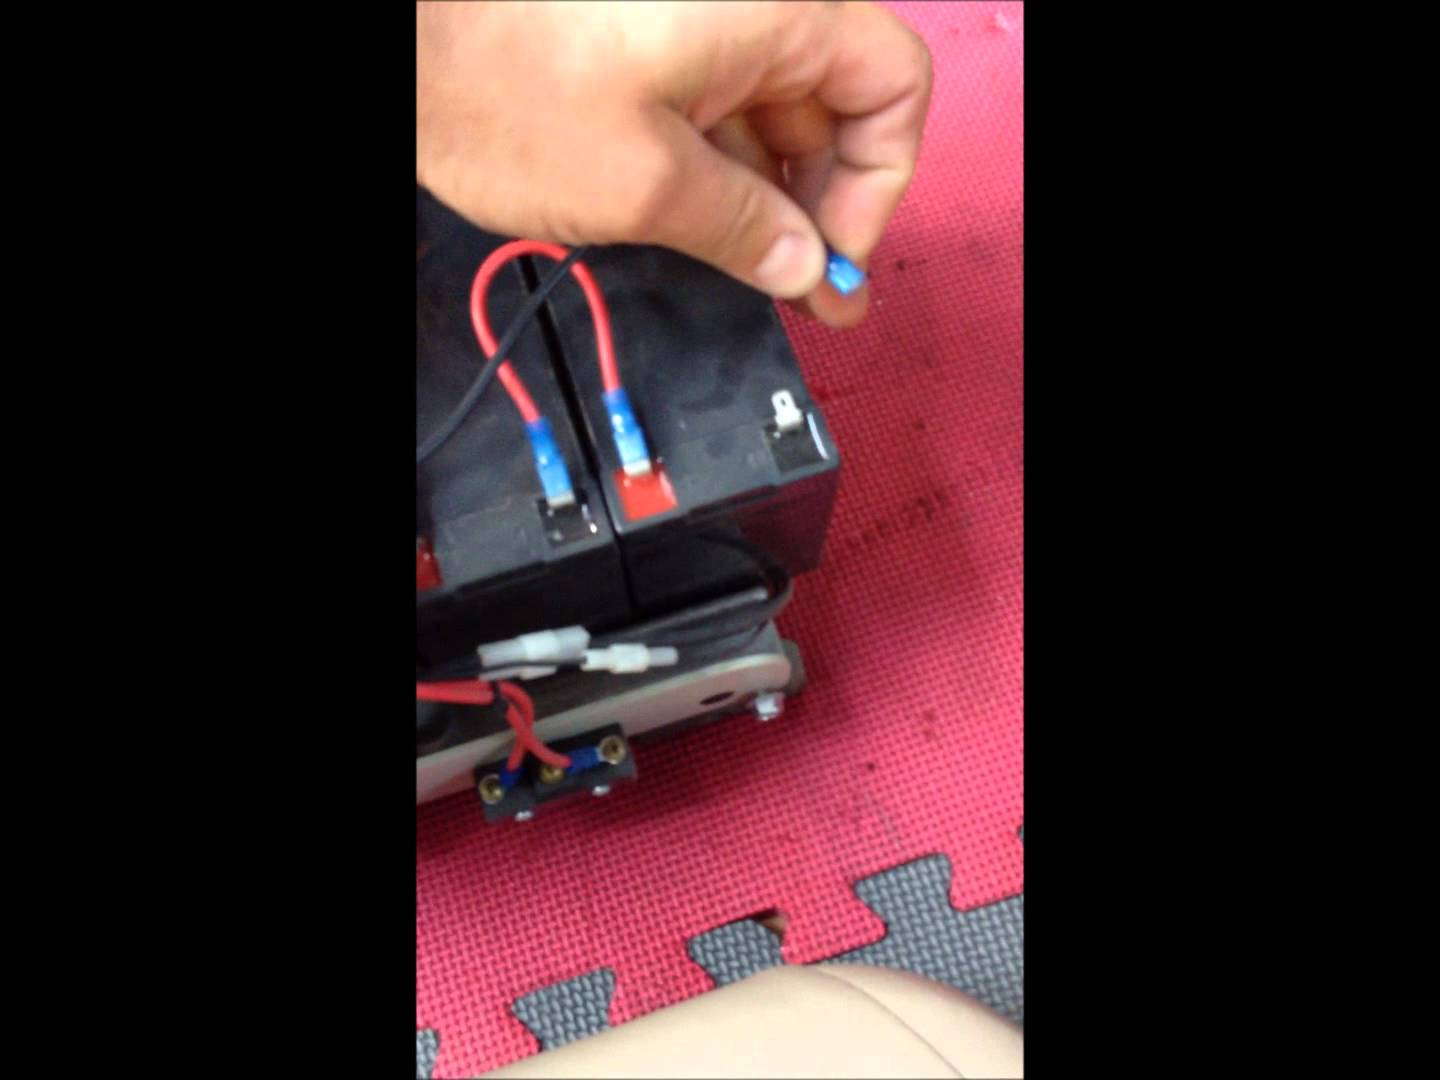 bruno chair lift maintenance glider rocking cushion covers how to replace sre 2750 stair batteries